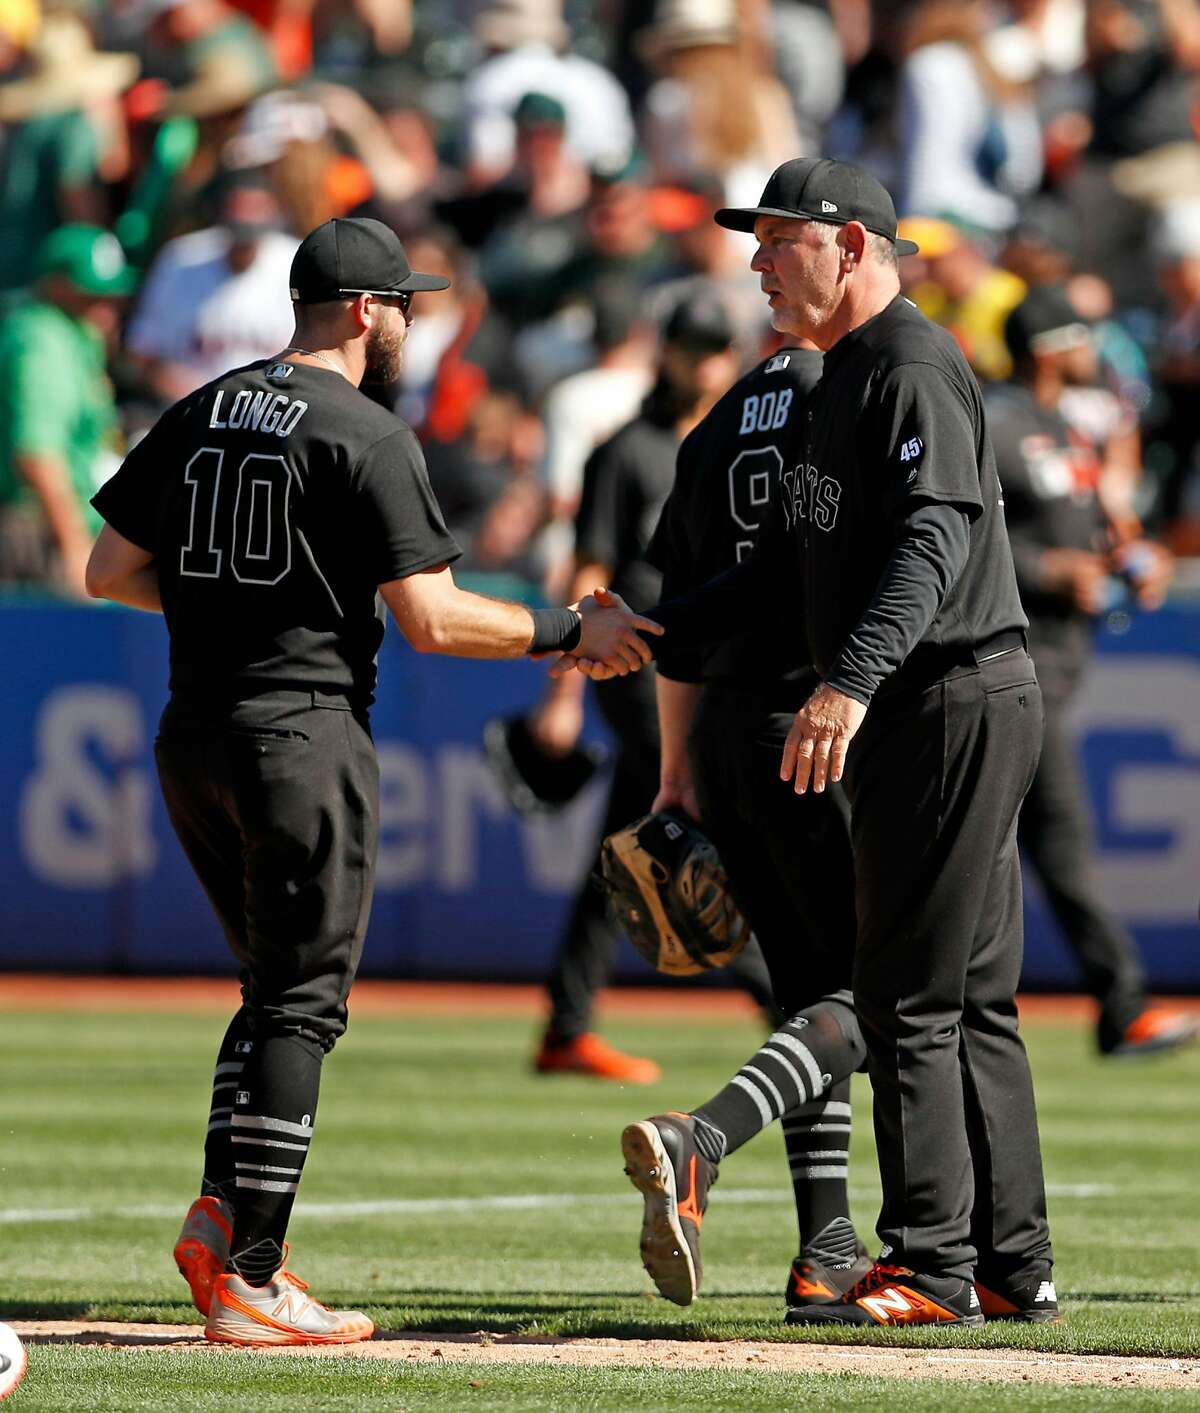 San Francisco Giants' manager Bruce Bochy shakes hands with Evan Longoria after 5-4 win over Oakland Athletics during MLB game at Oakland Coliseum in Oakland, Calif., on Sunday, August 25, 2019.